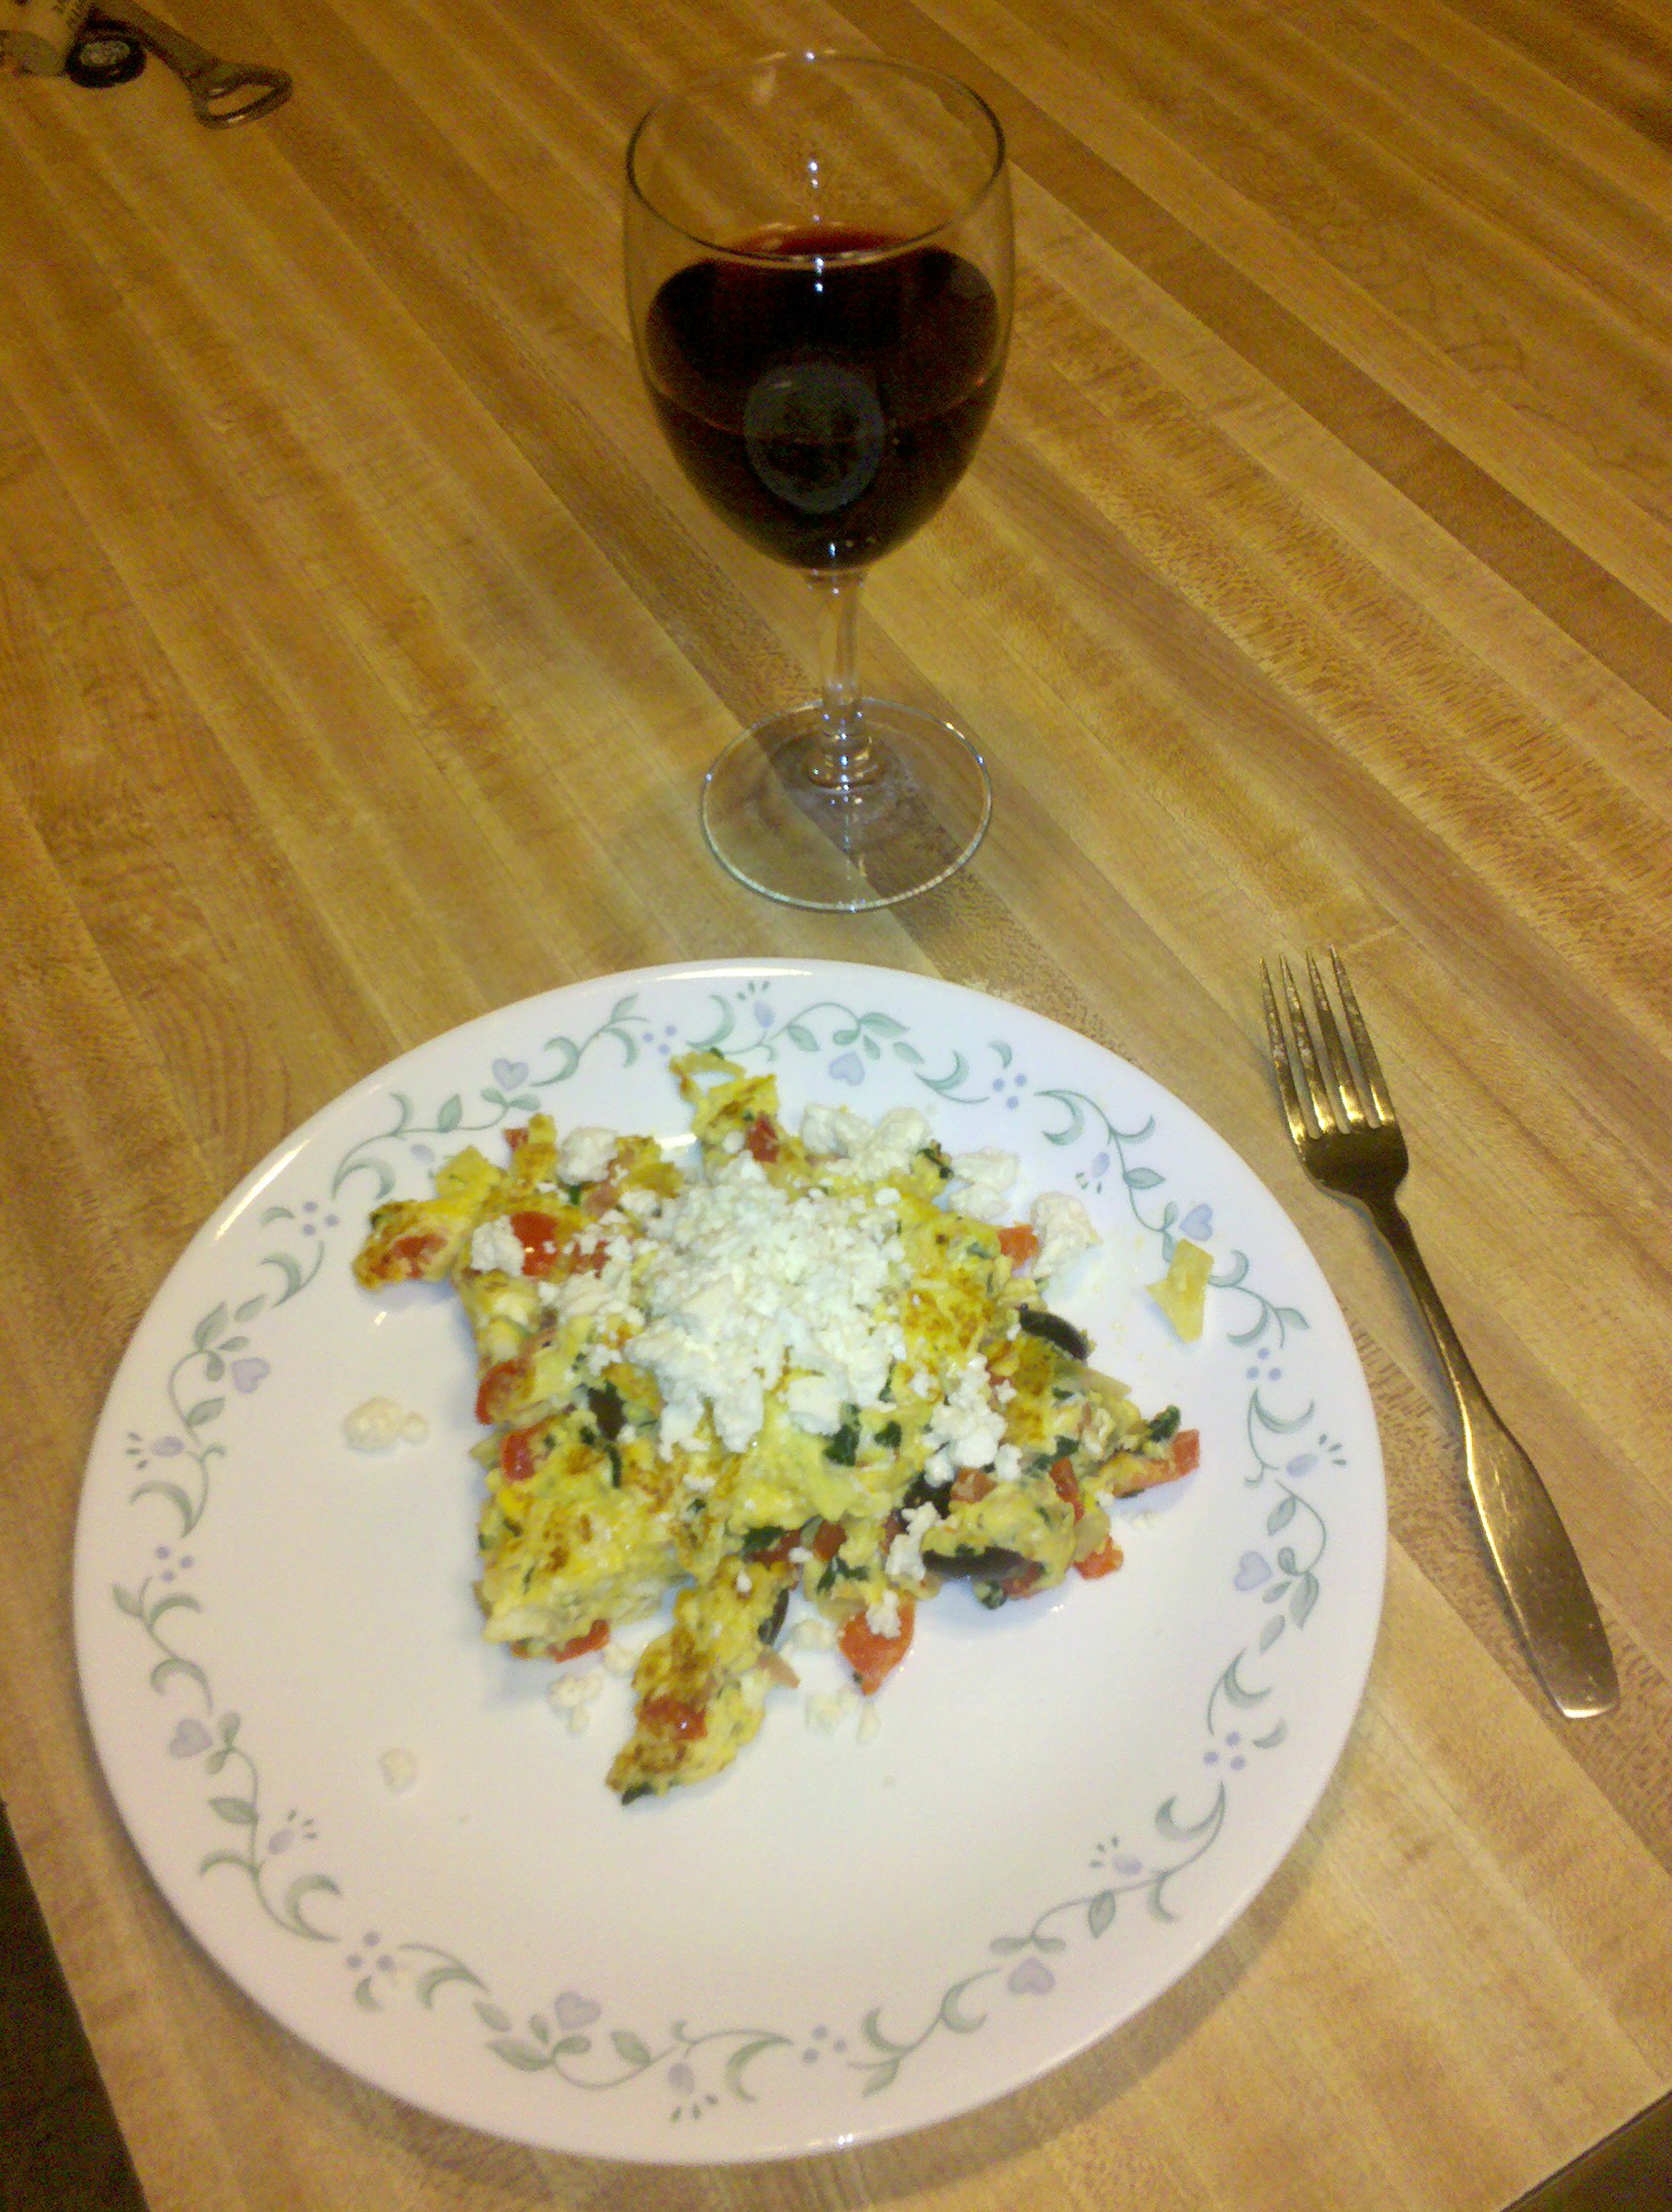 Home, Milford, NH :: Eggs with red pepper, onions, garlic, ham, spinach, kalamata olives, topped with Feta cheese, and a glass of red wine.